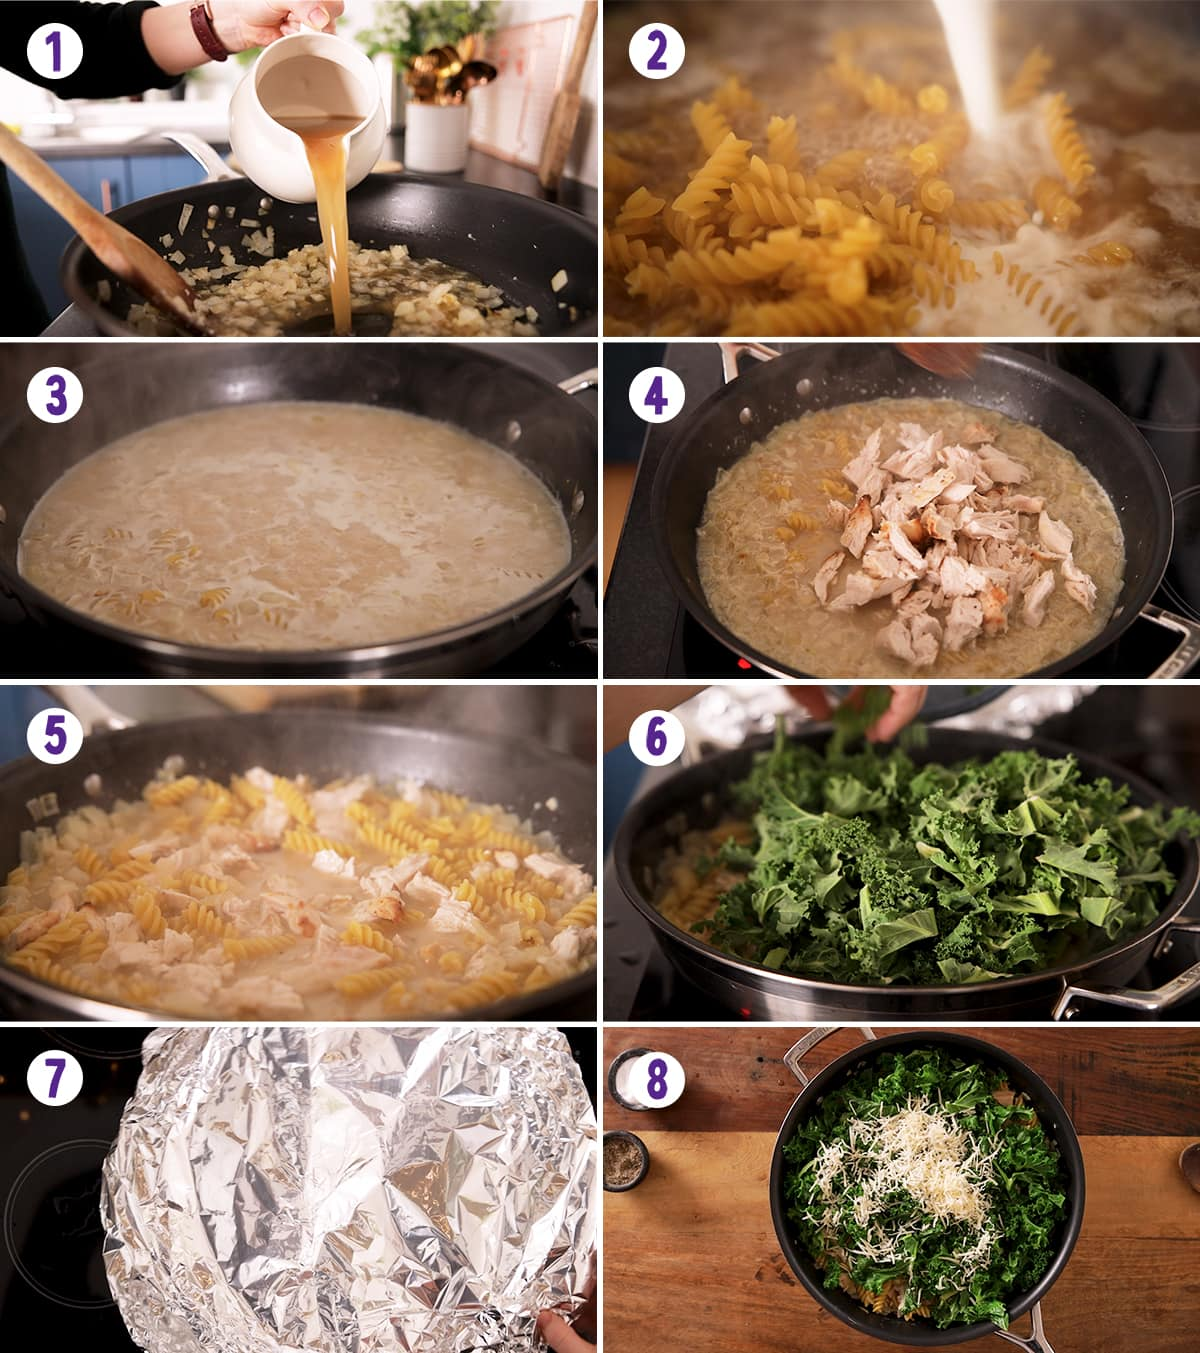 8 images in a collage showing the process of making a chicken pasta recipe.